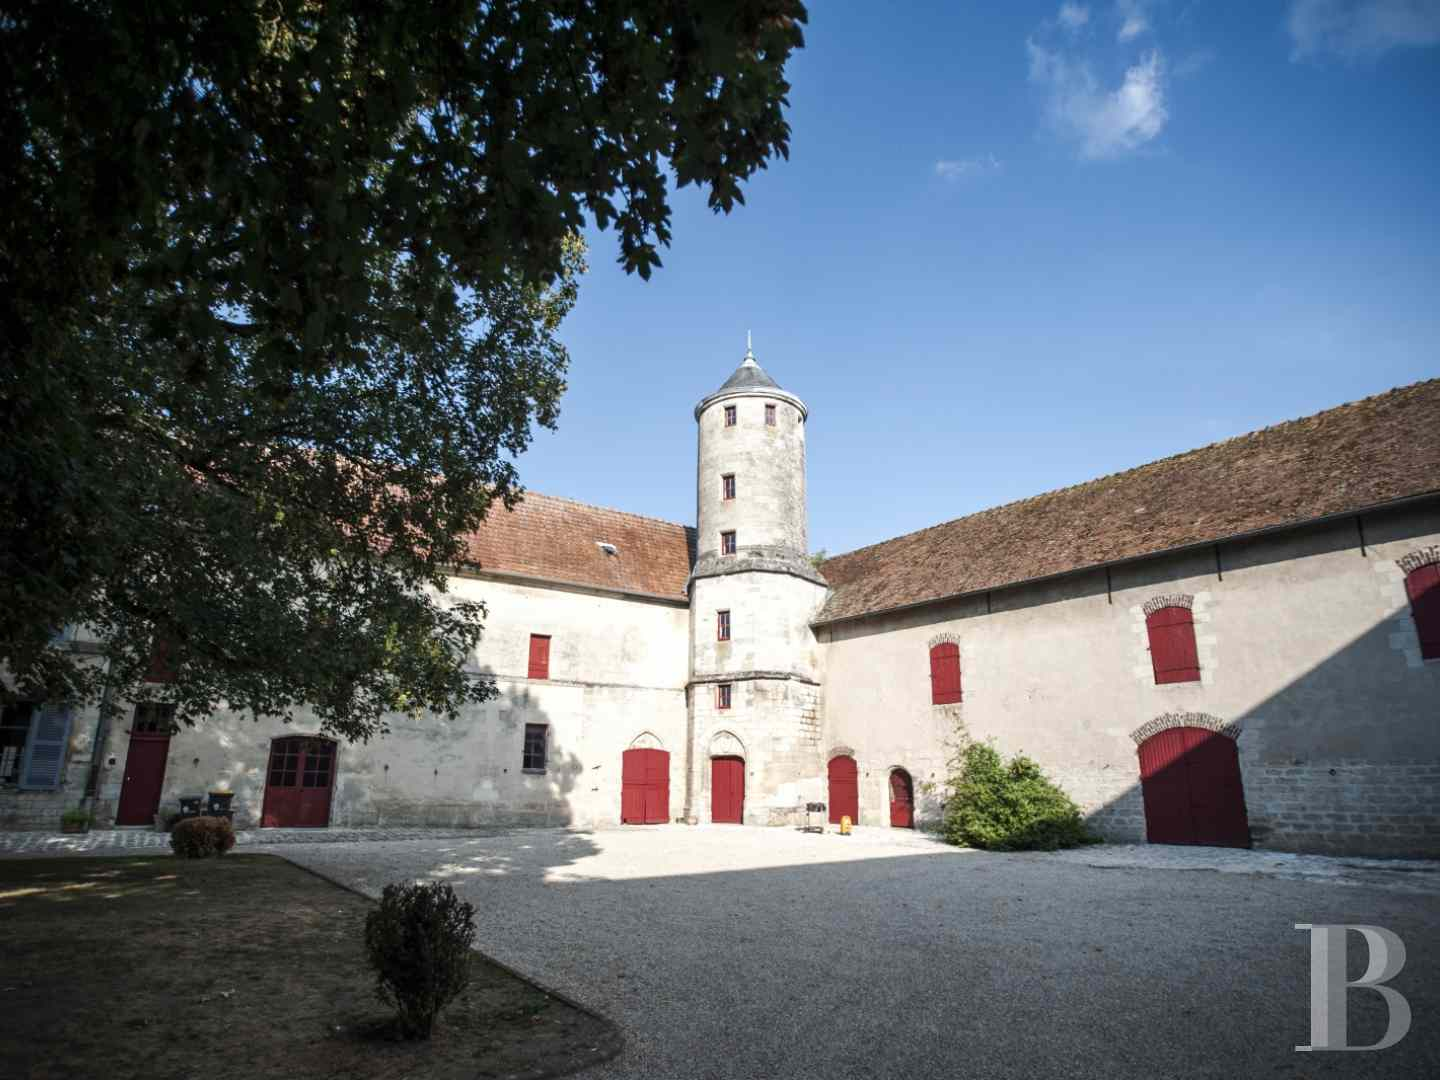 character properties France picardy character houses - 12 zoom